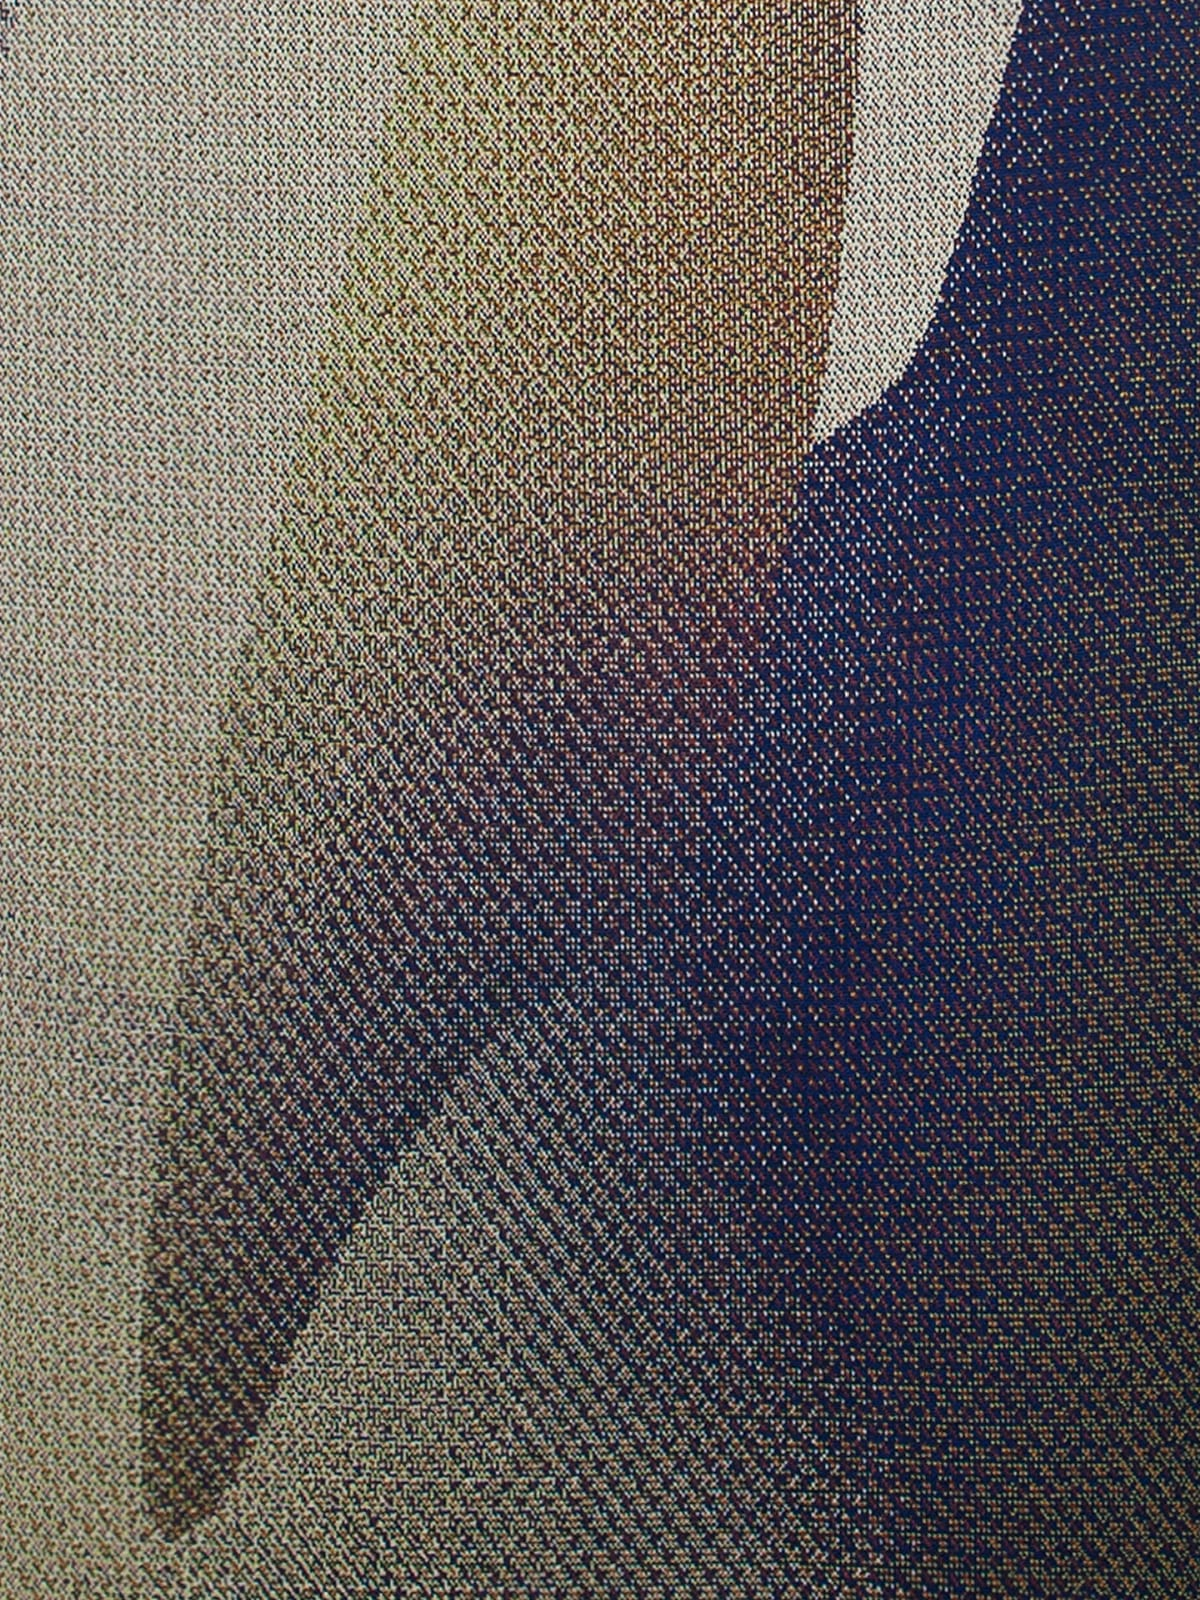 Shoot Knitted apparel 02 meta detail